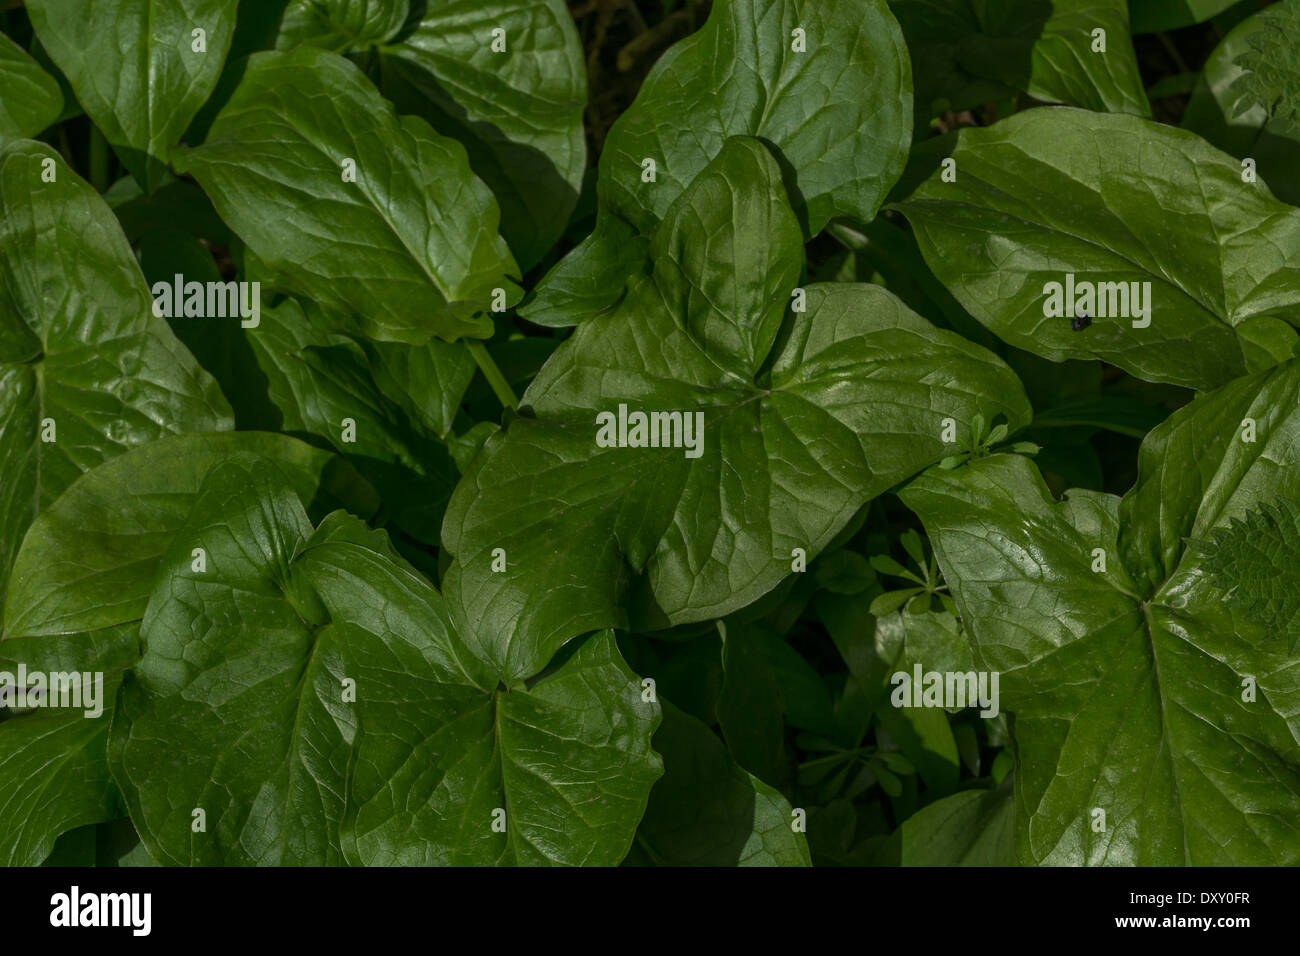 Leaf foliage of Arum maculatum / Cuckoo-pint / Lords-and-Ladies - a toxic plant. Called Cuckoo-pint, Lords and Ladies, Wake Robin. - Stock Image